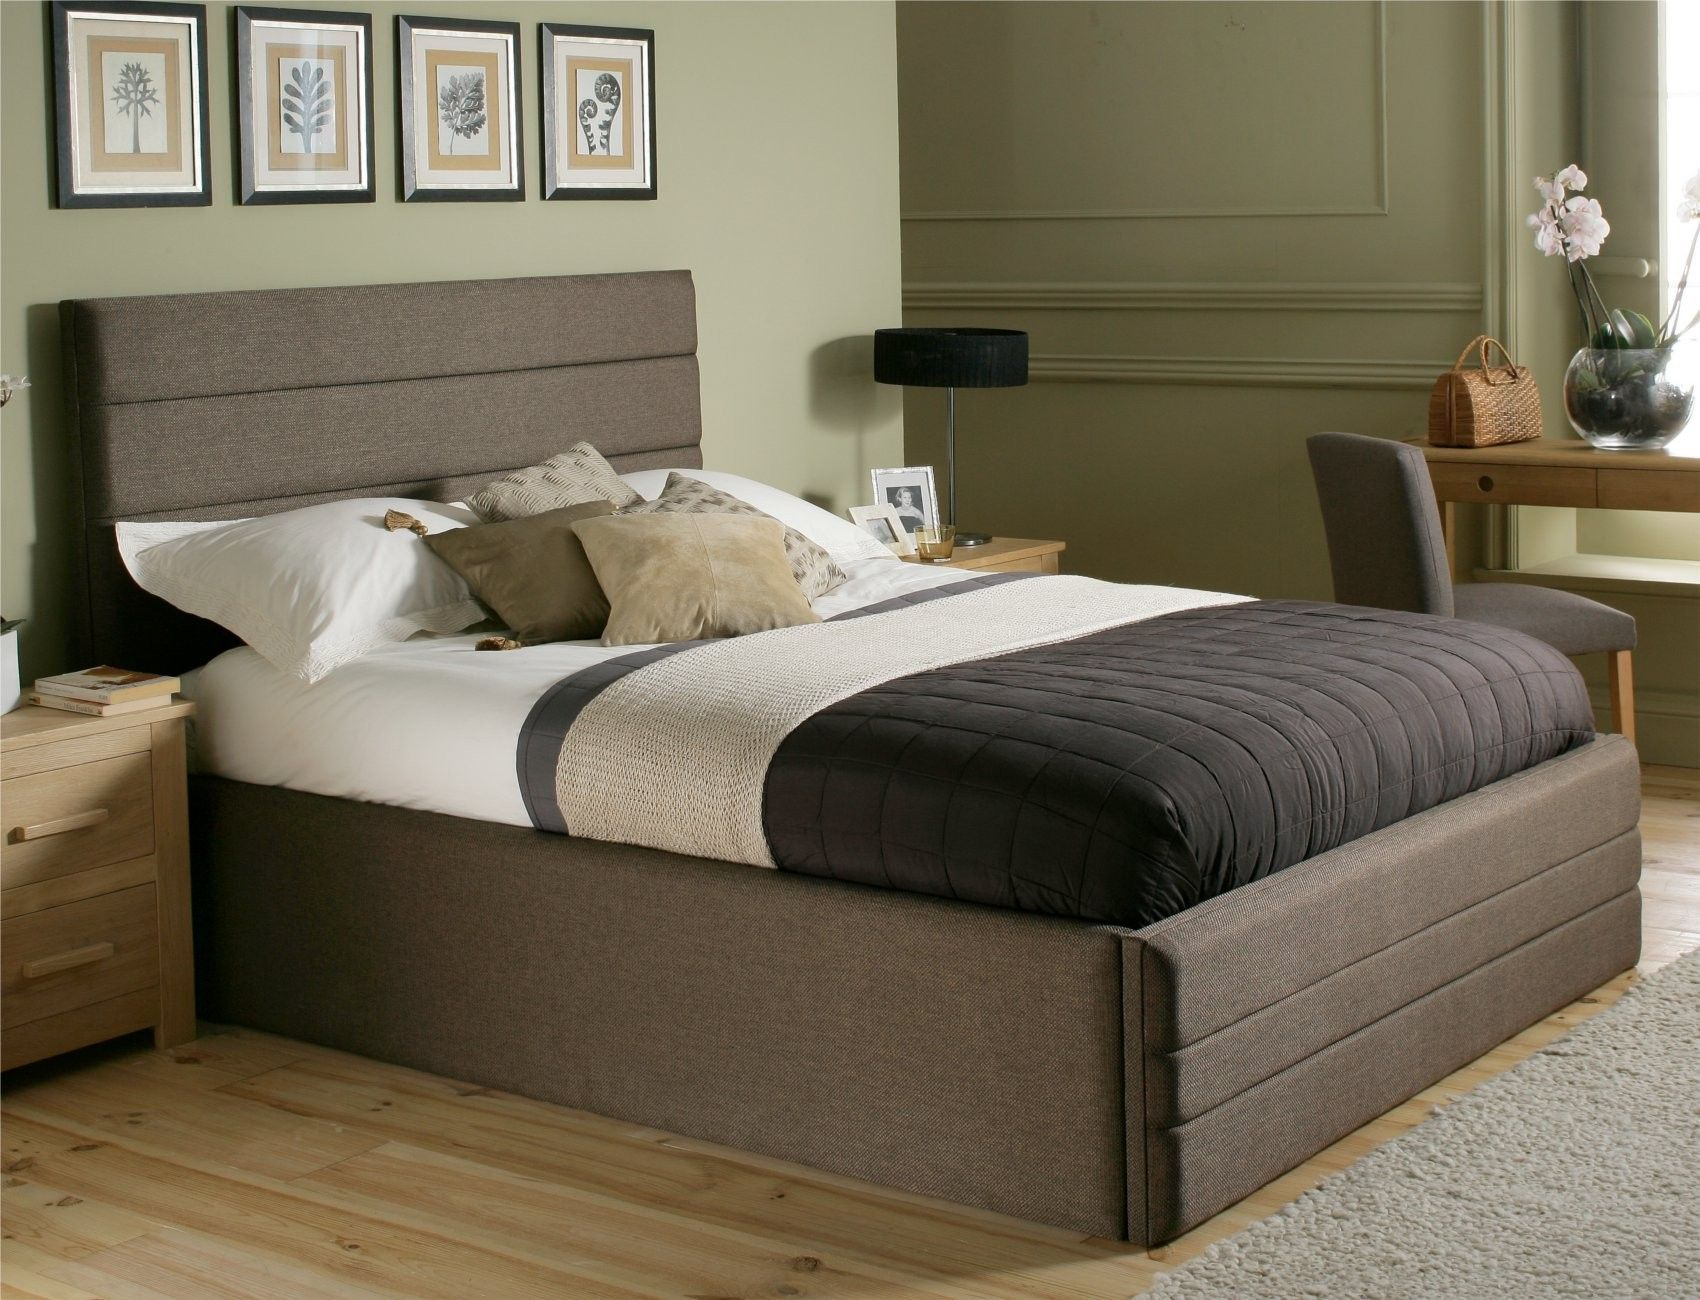 17 best images about beds on pinterest bed storage tv beds and next day